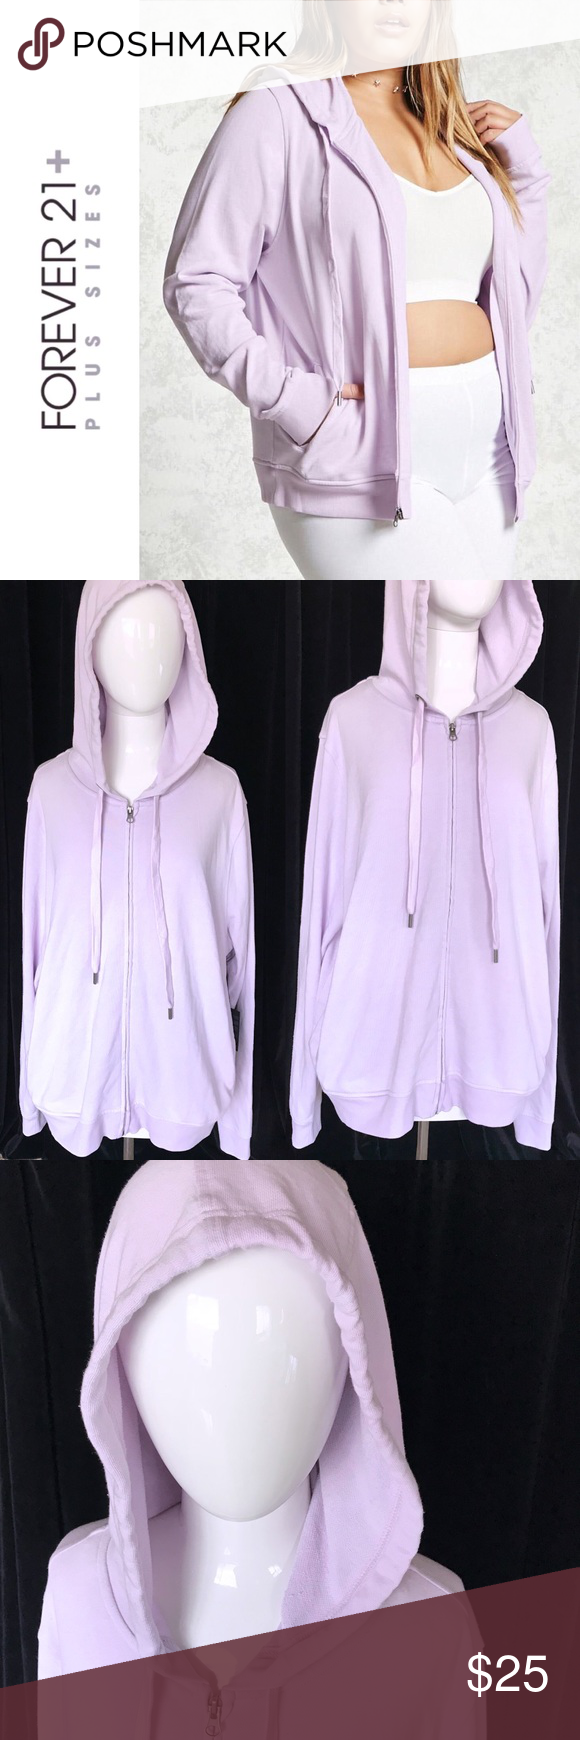 73400a06cc0 PLUS SIZE lavender zip up hoodie 💜 a french terry knit hoodie featuring a  drawstring hood with accenting grommets